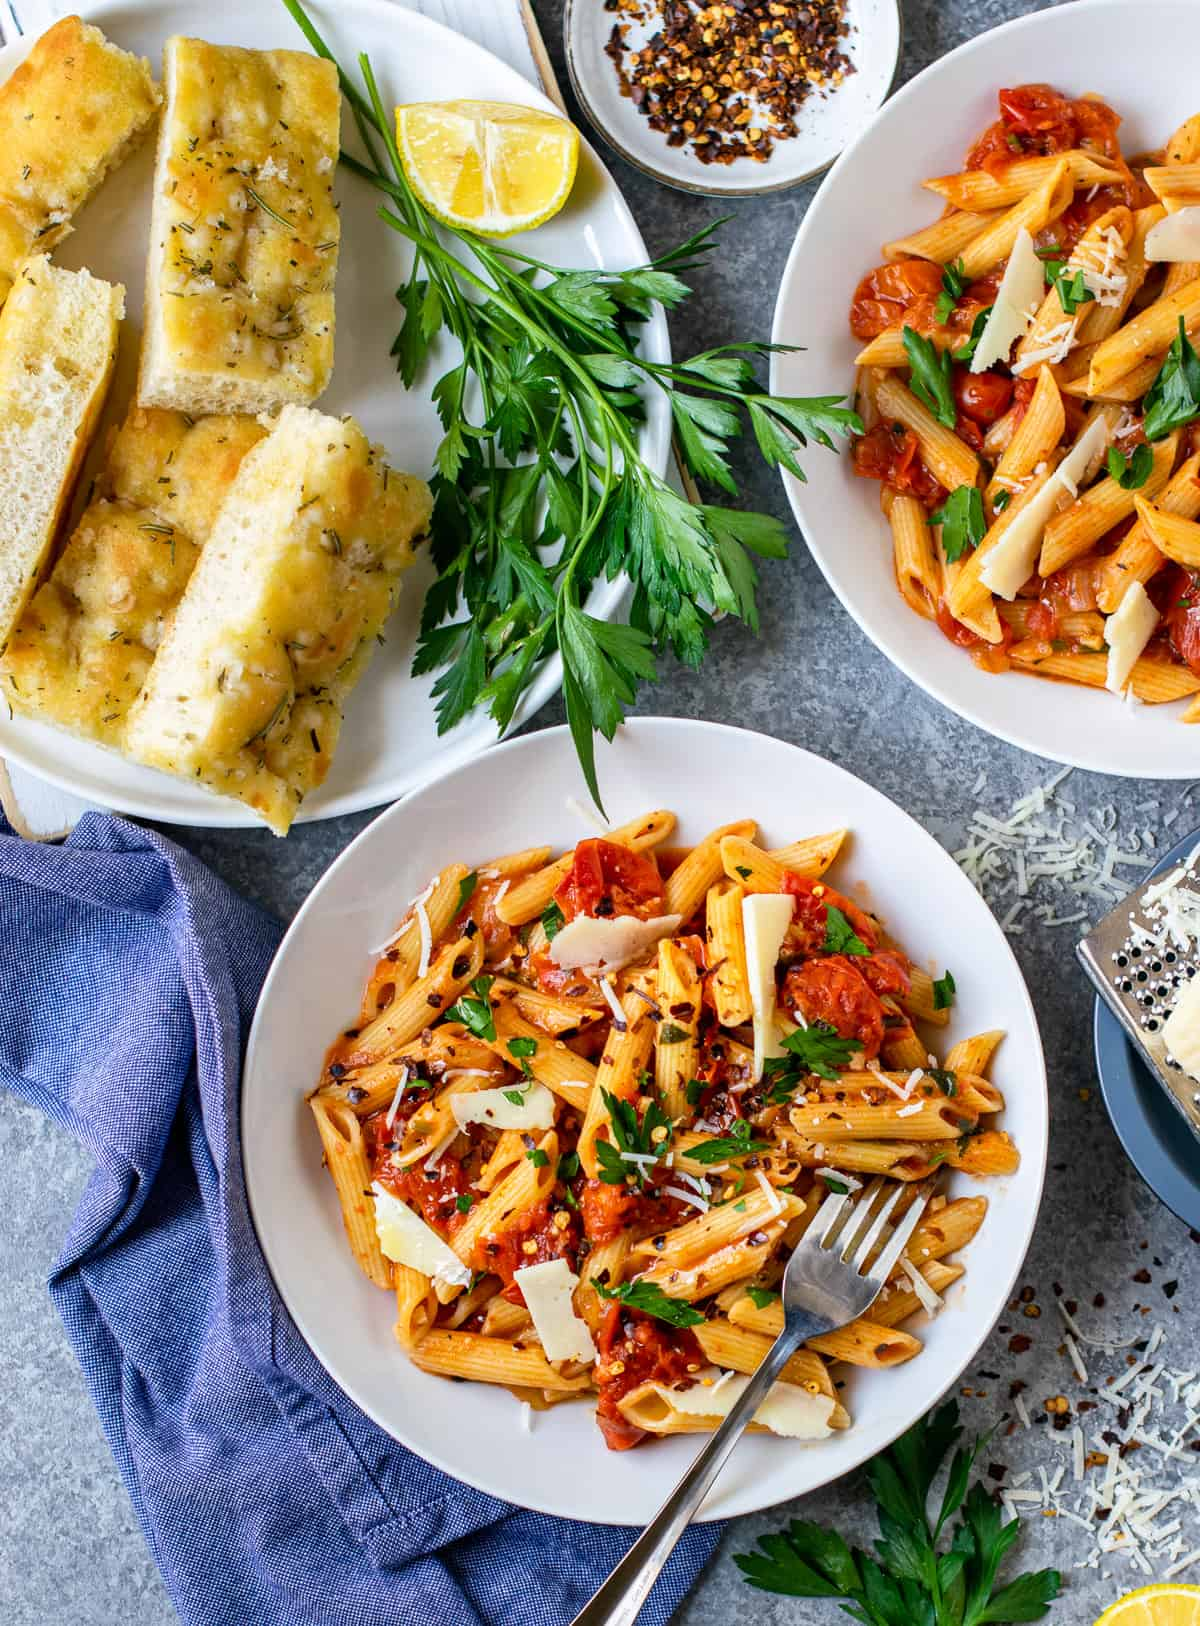 Penne pasta served with foccasia bread on the side.